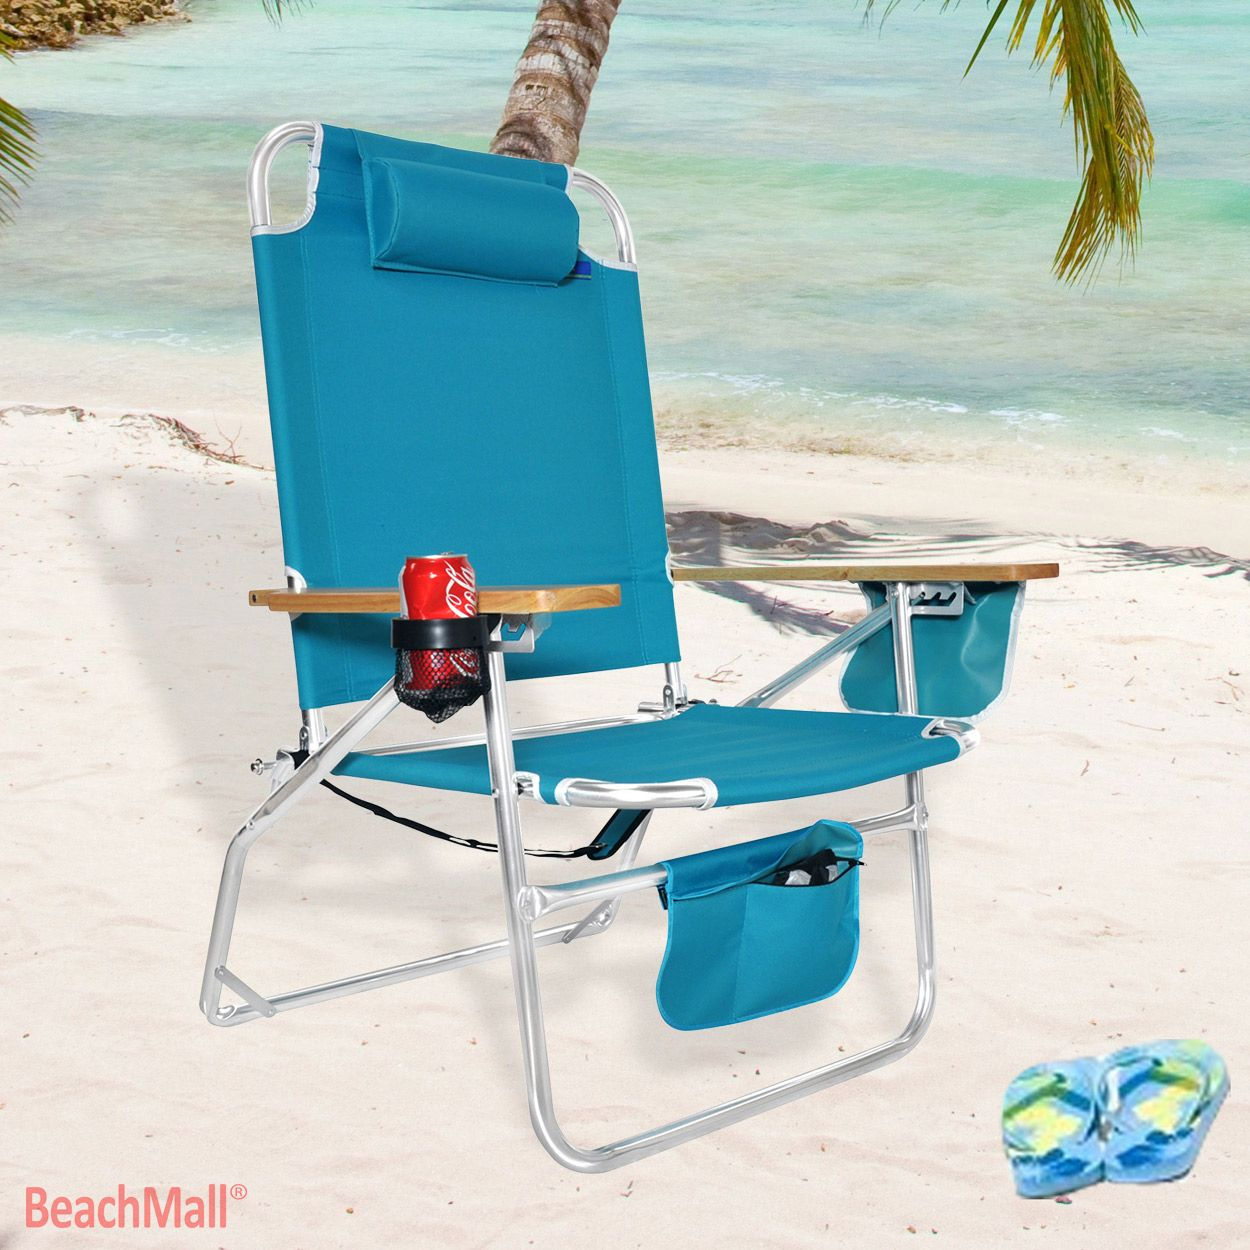 Xl Aluminum Beach Chair For Big Amp Tall 149 95 Beachmall